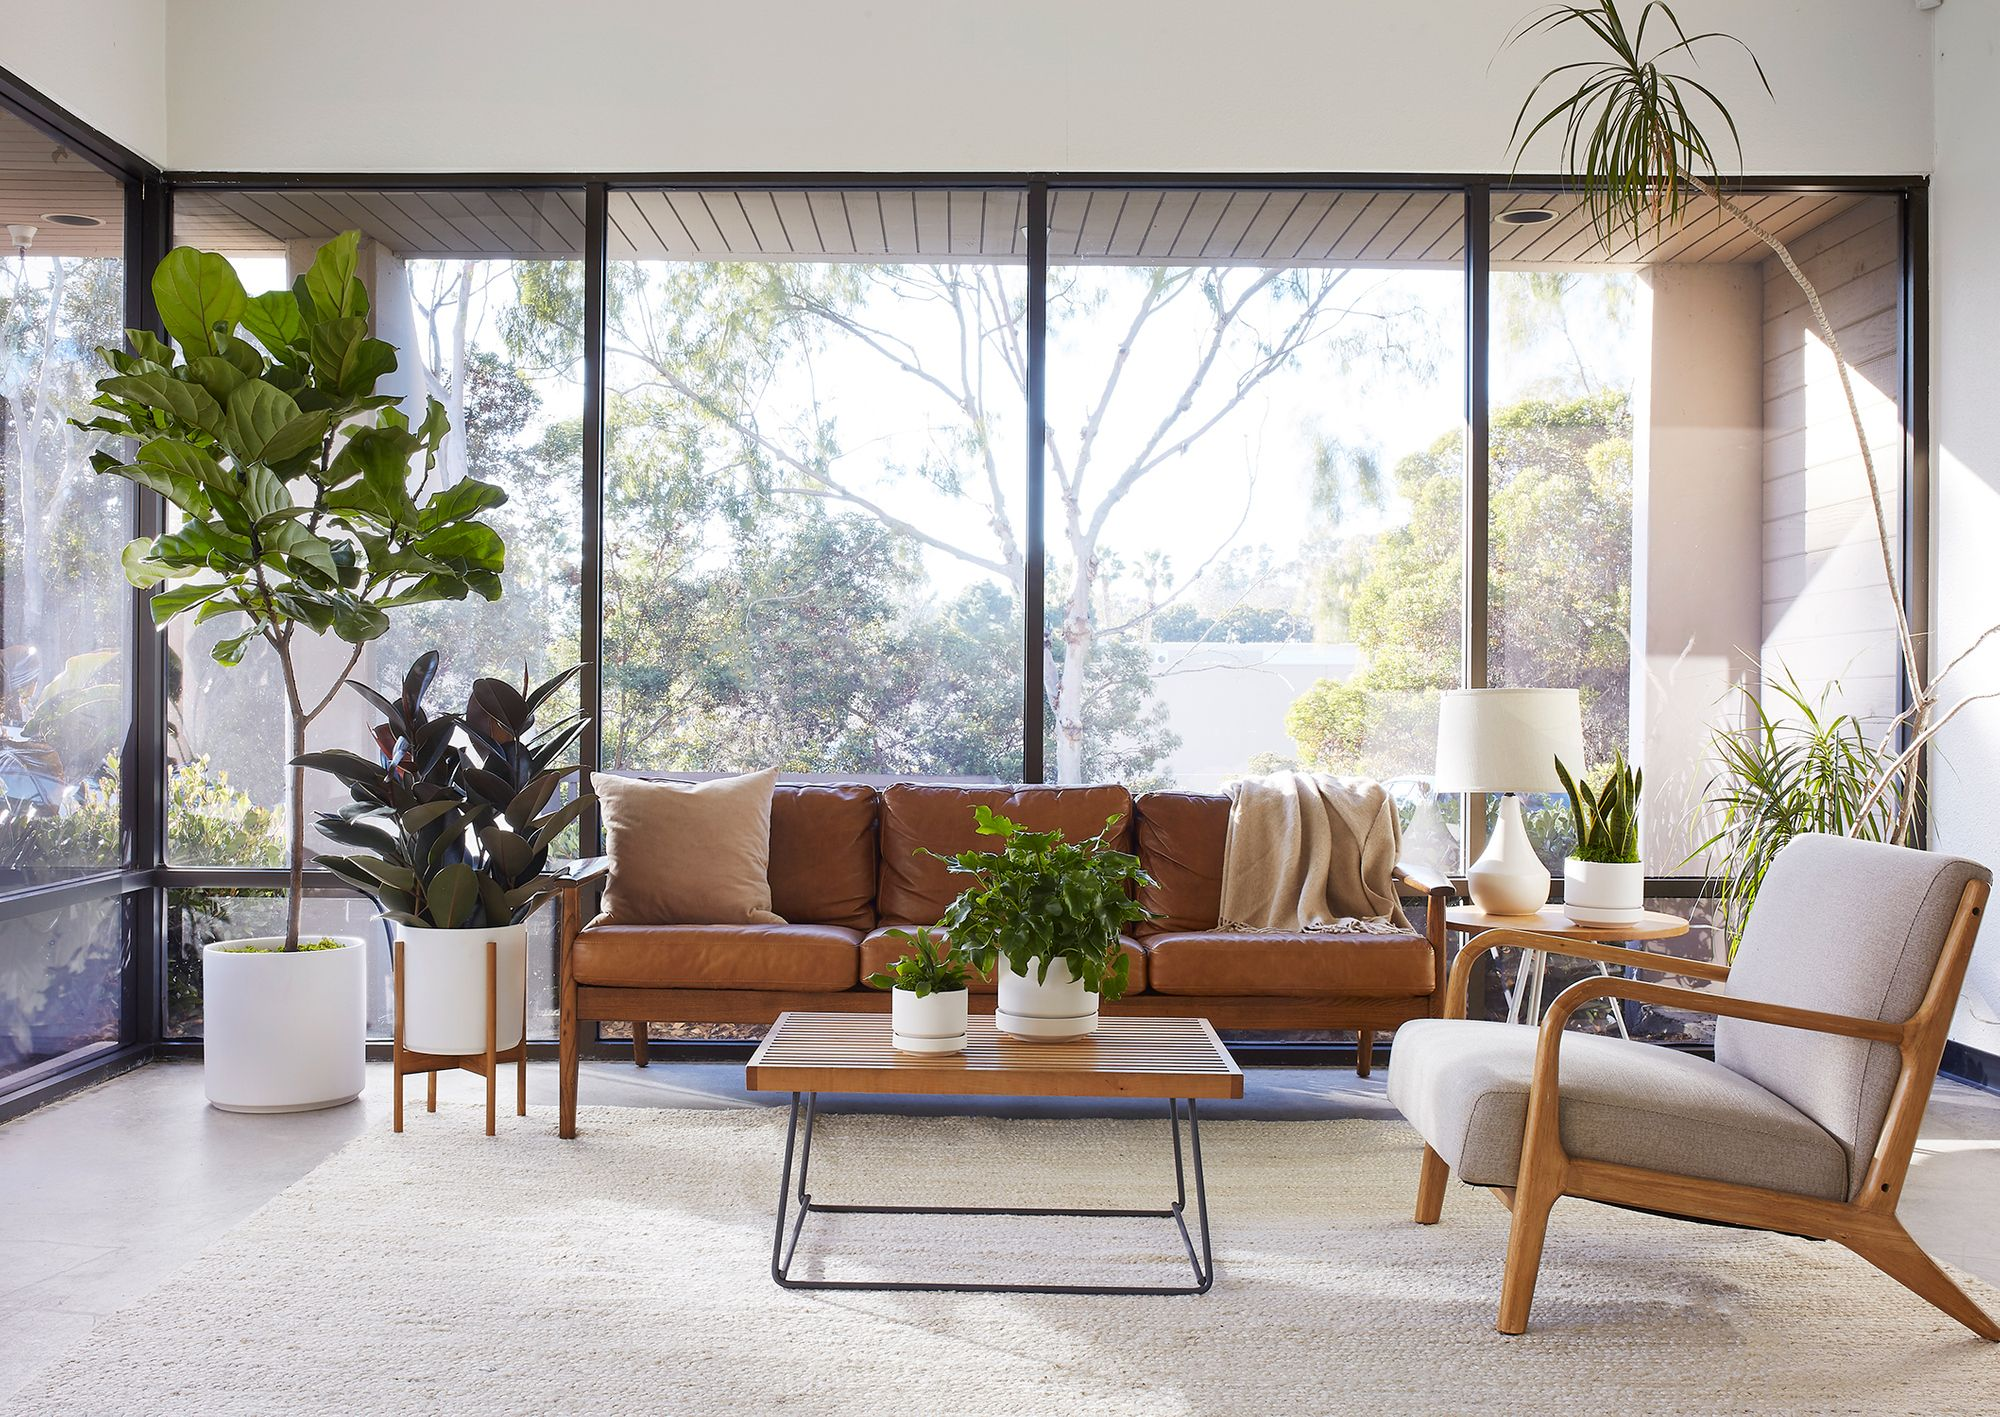 6 Characteristics Of Mid Century Modern Style And How To Use Them La Residence Plant Care Tips And More In 2020 Mid Century Modern Interiors Timeless Decor Mid Century Modern